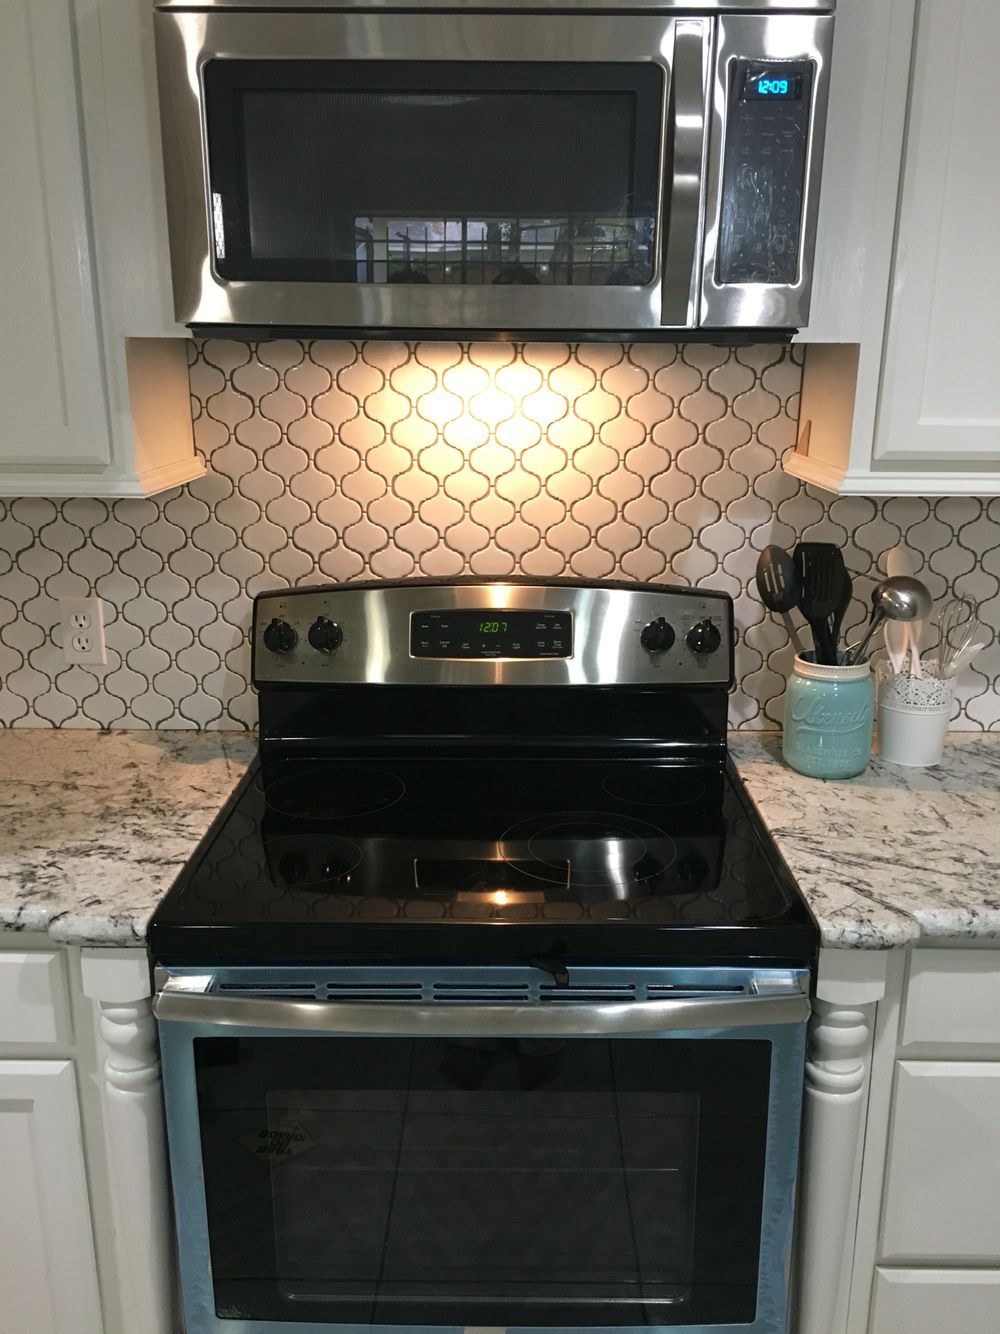 Moroccan Tile Backsplash From Lowes Alaska White Granite